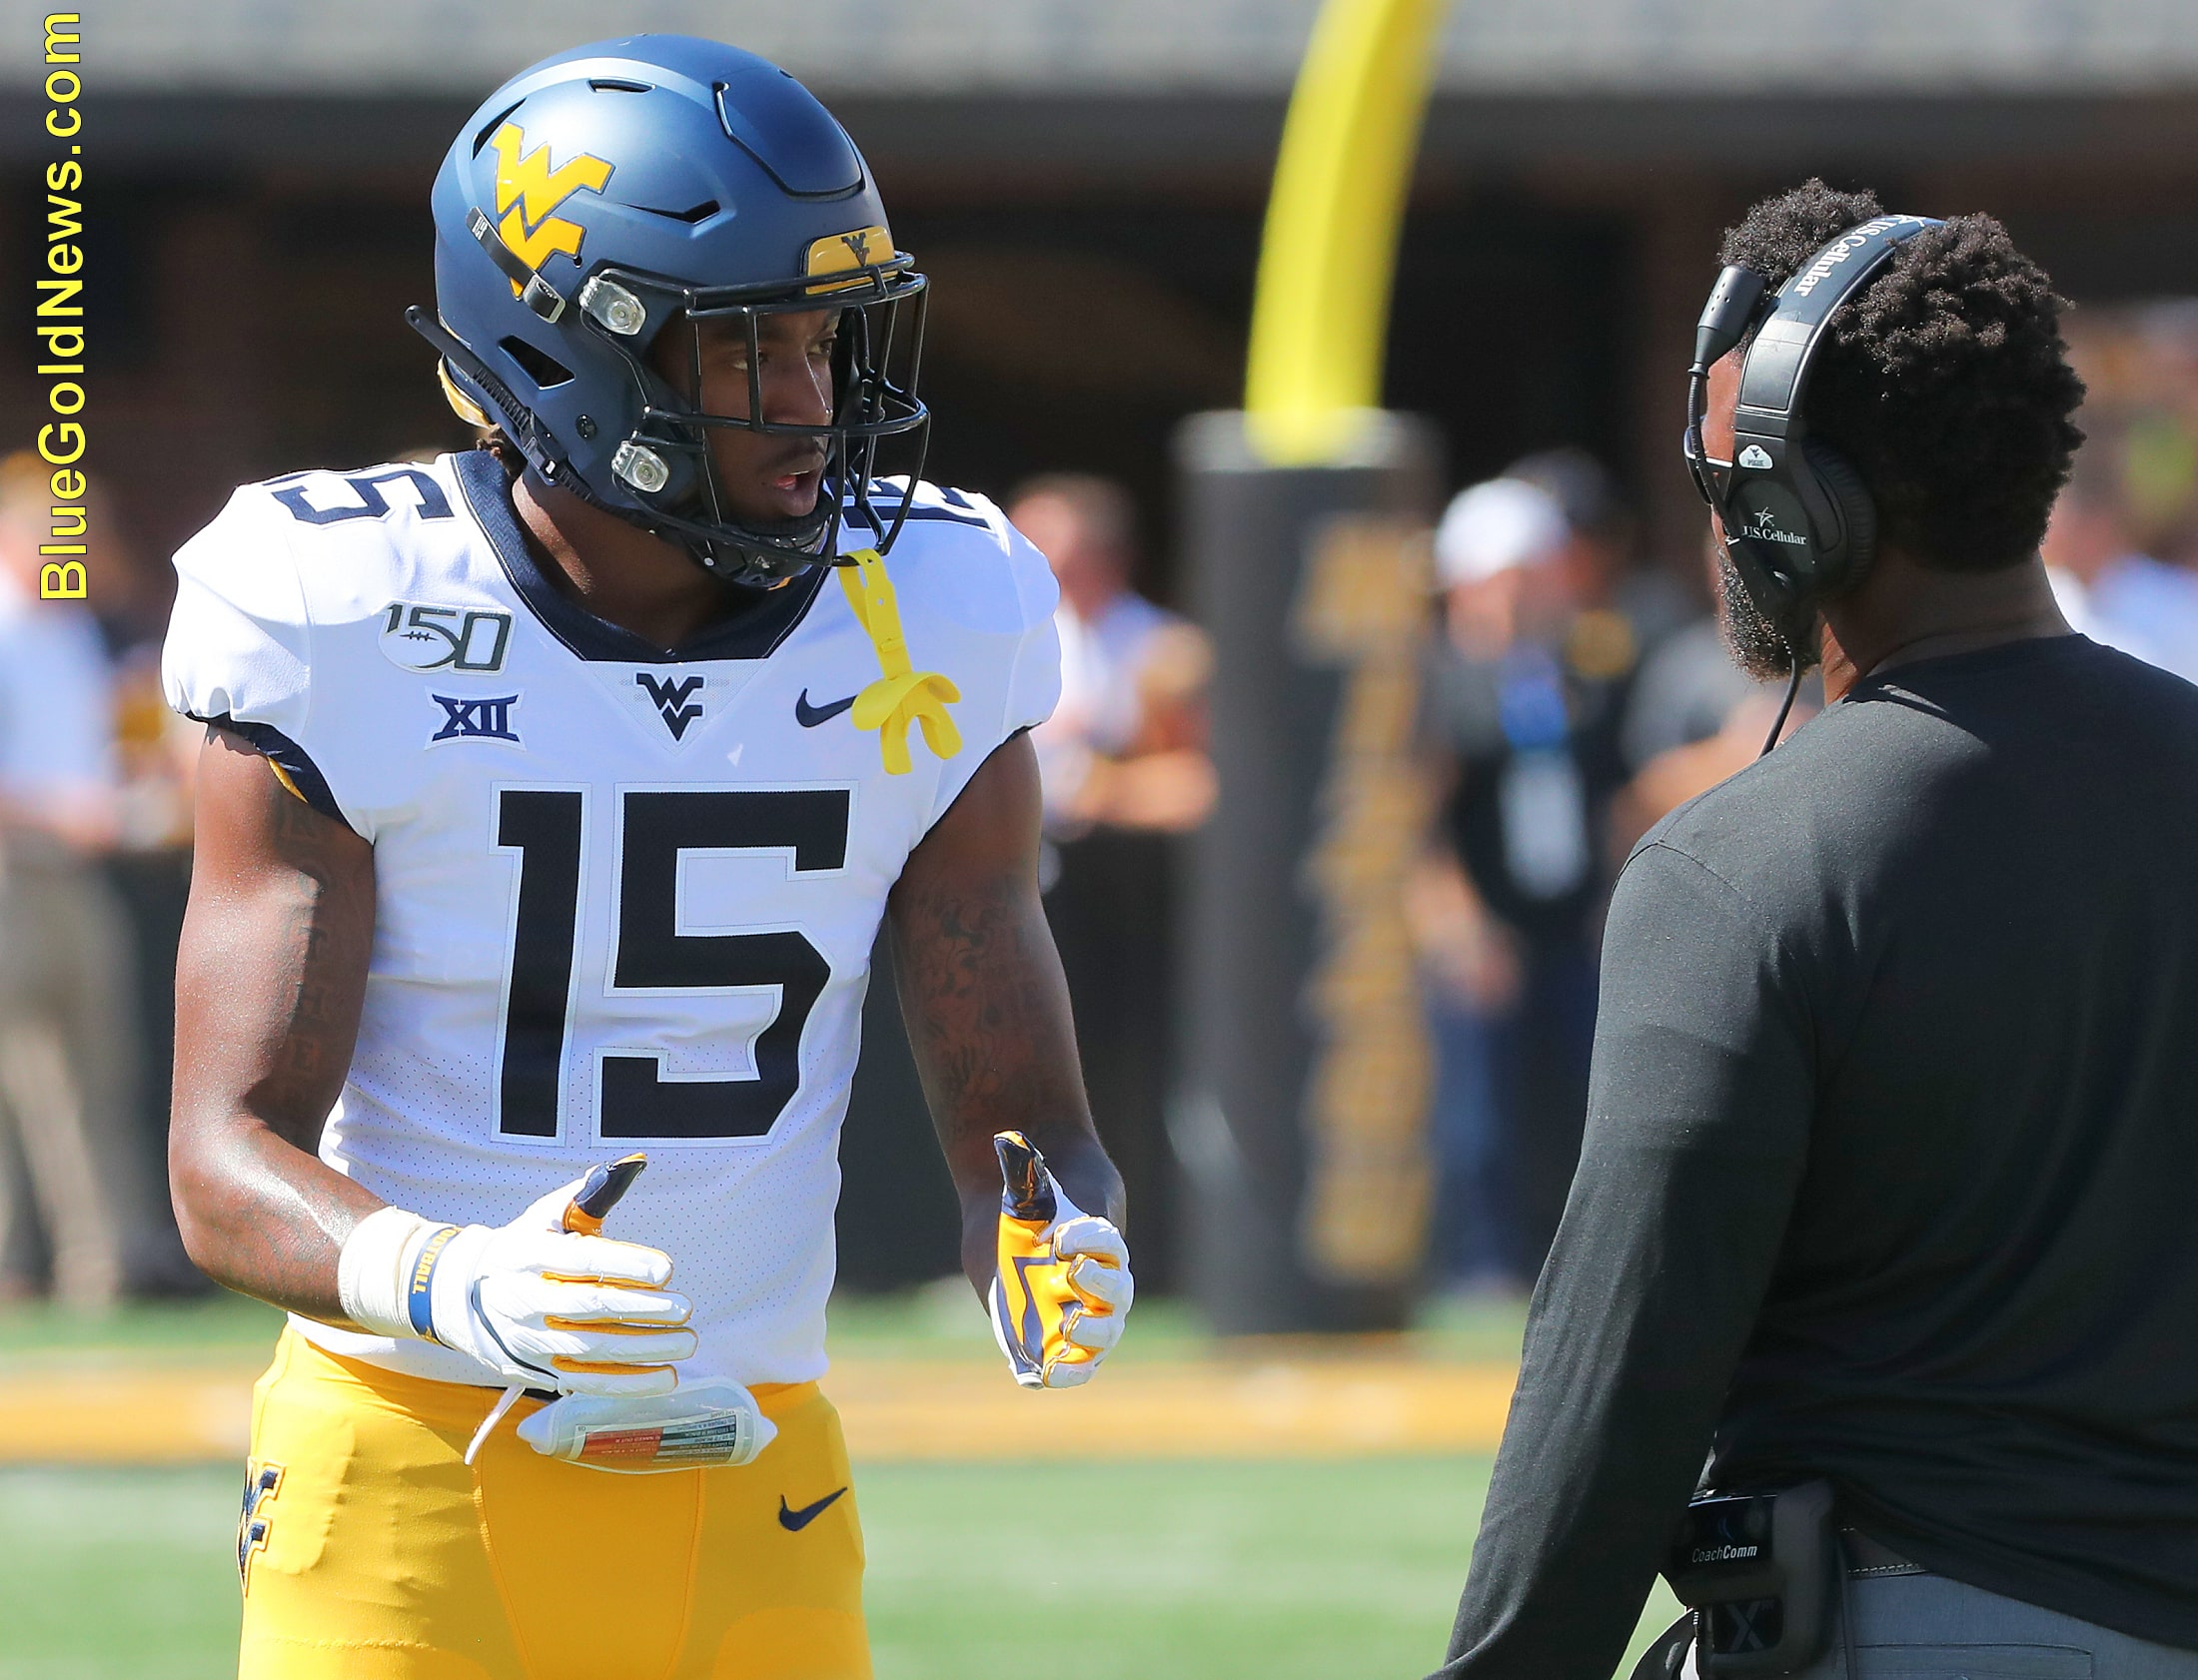 West Virginia safety Kerry Martin (15) gets instruction from WVU defensive assistant Al Pogue